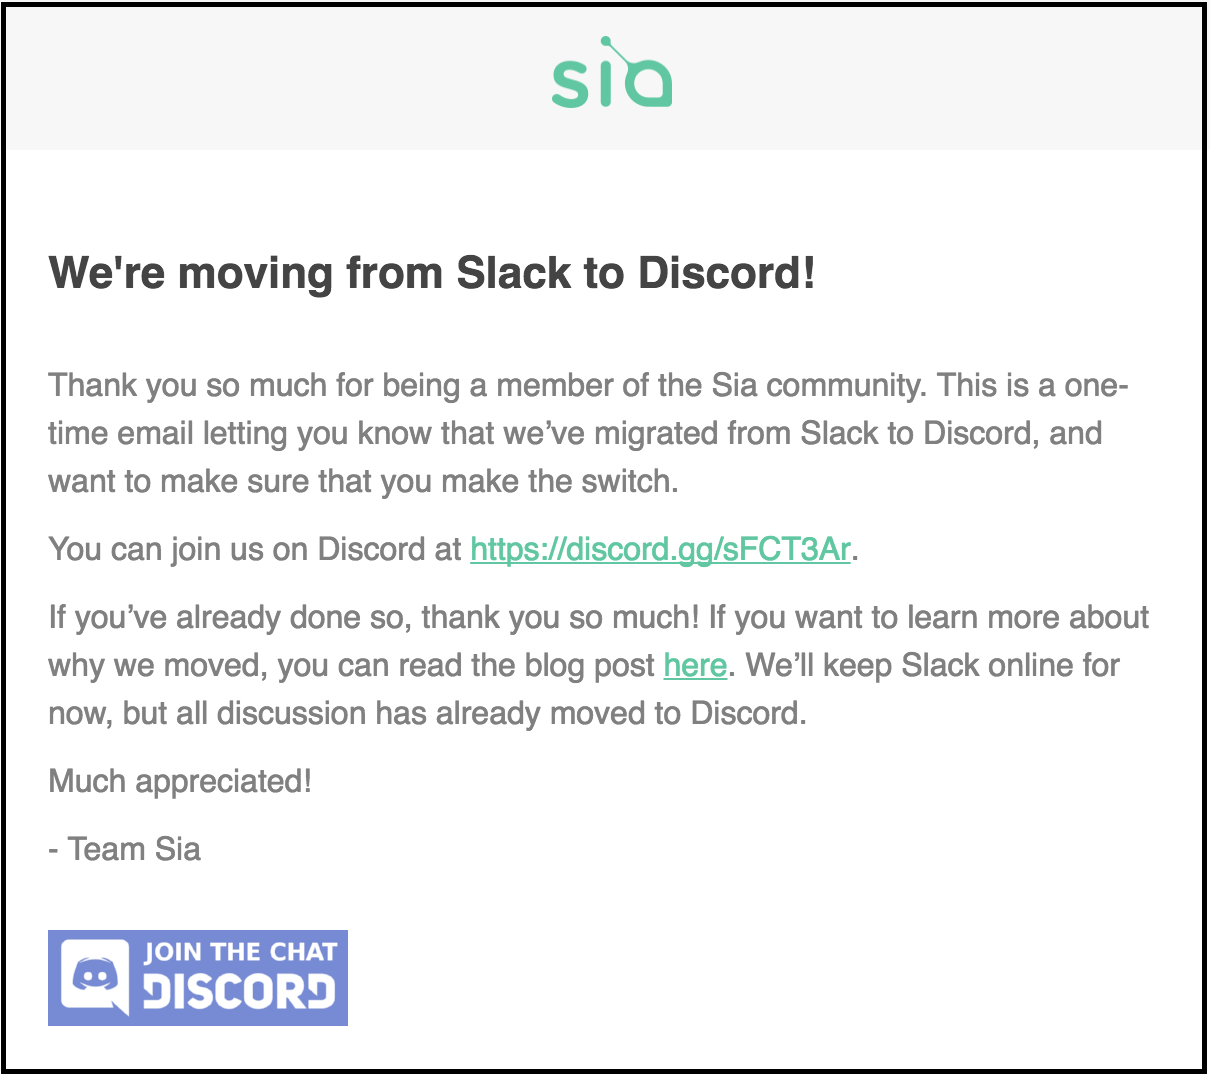 Guide: Moving your online community from Slack to Discord